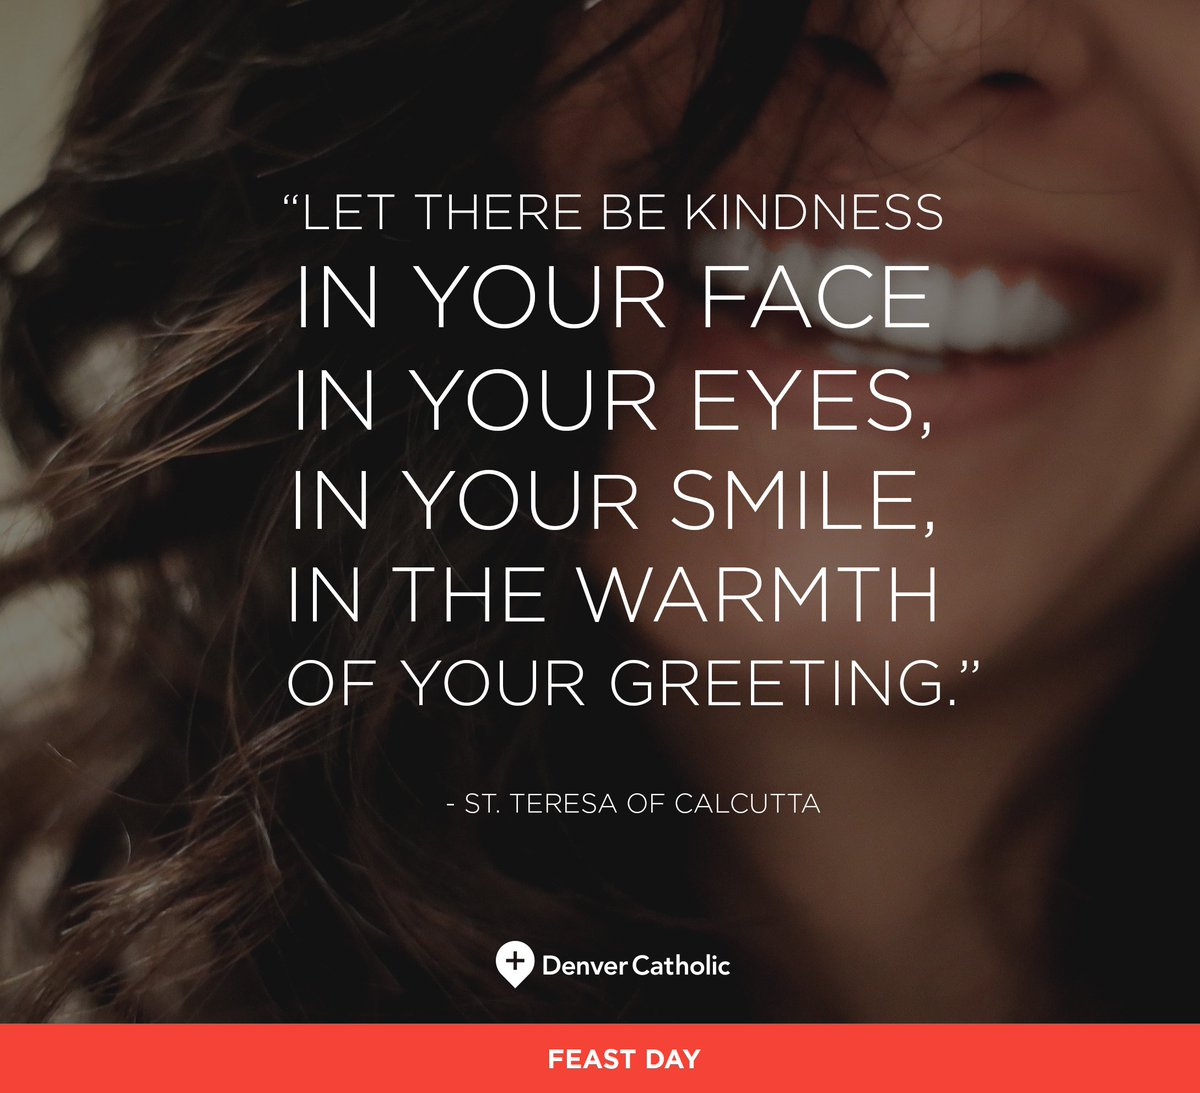 Denver Catholic On Twitter Let There Be Kindness In Your Face In